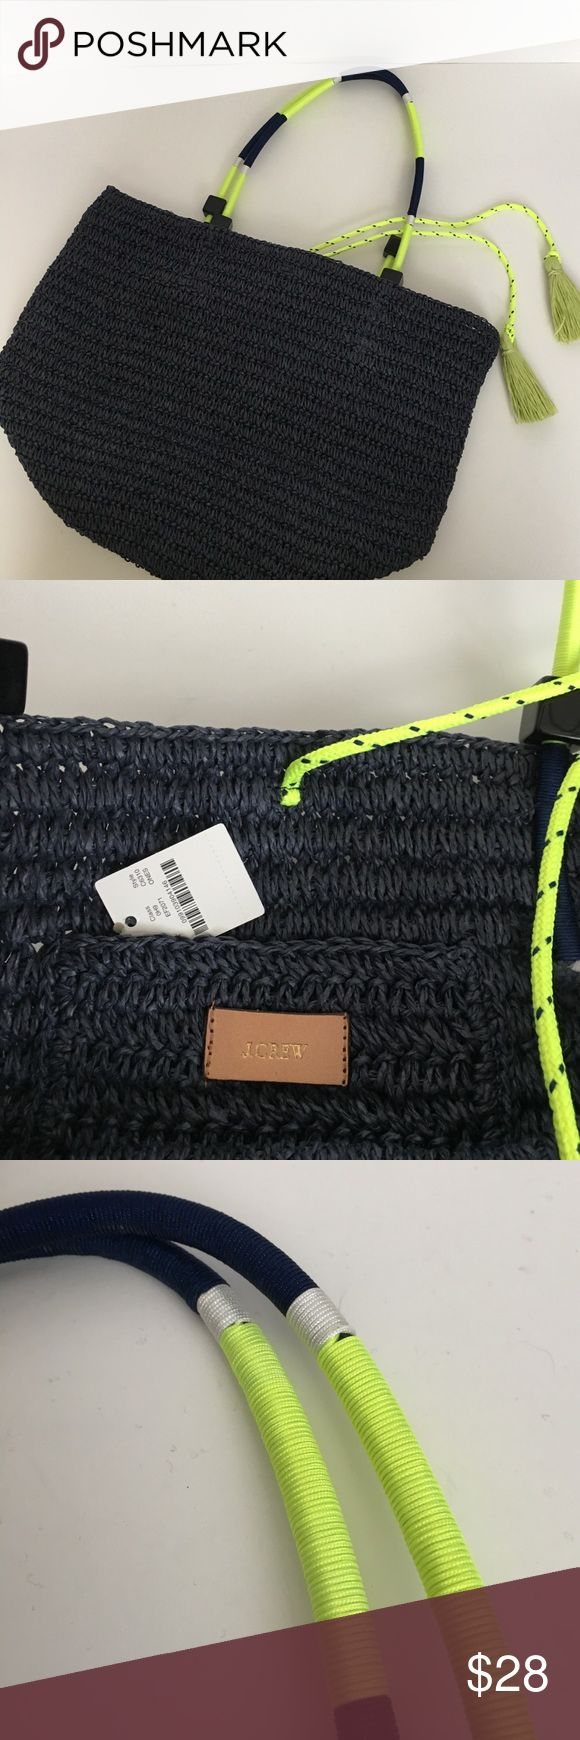 J crew bag Navy blue and neon green straw bag J. Crew Bags Totes